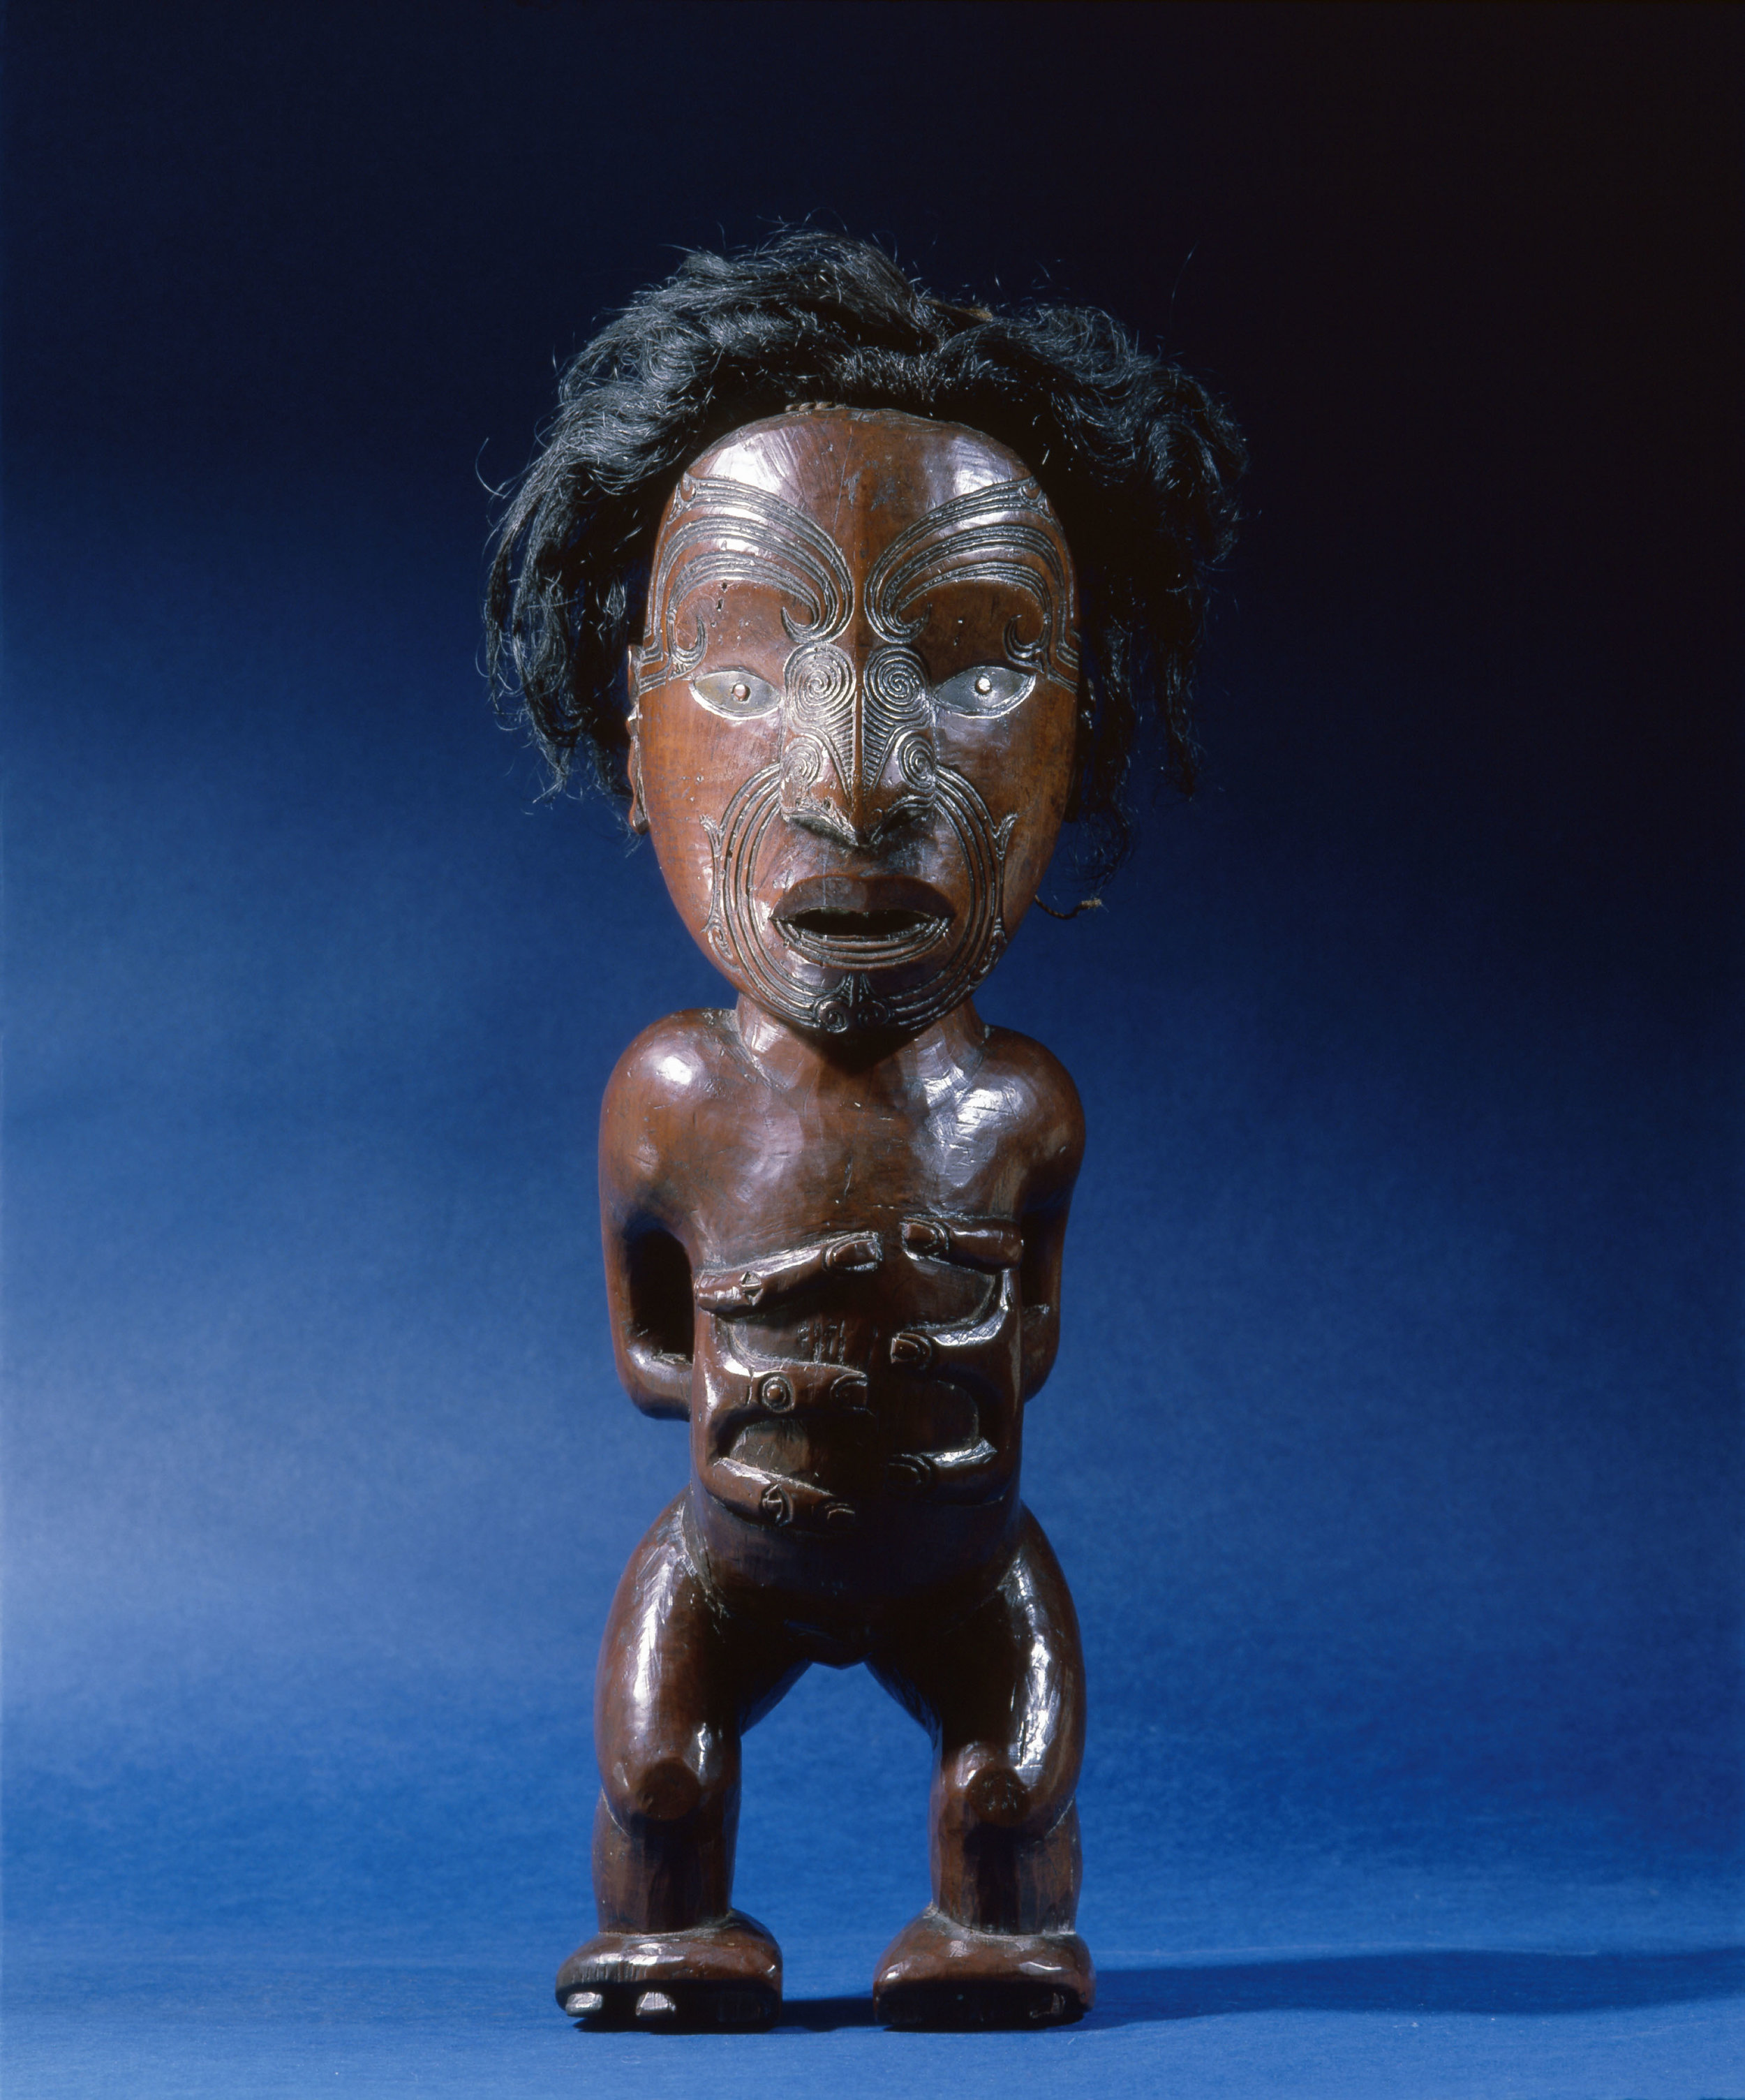 Carved wooden human figure with inlaid metal eyes and human hair. Although it is probably a depiction of a recent ancestor it's precise function is unknown. | Pre-1820. | Inv. #: 55407000 © Werner Forman Archive / Courtesy of Entwistle Gallery, London.